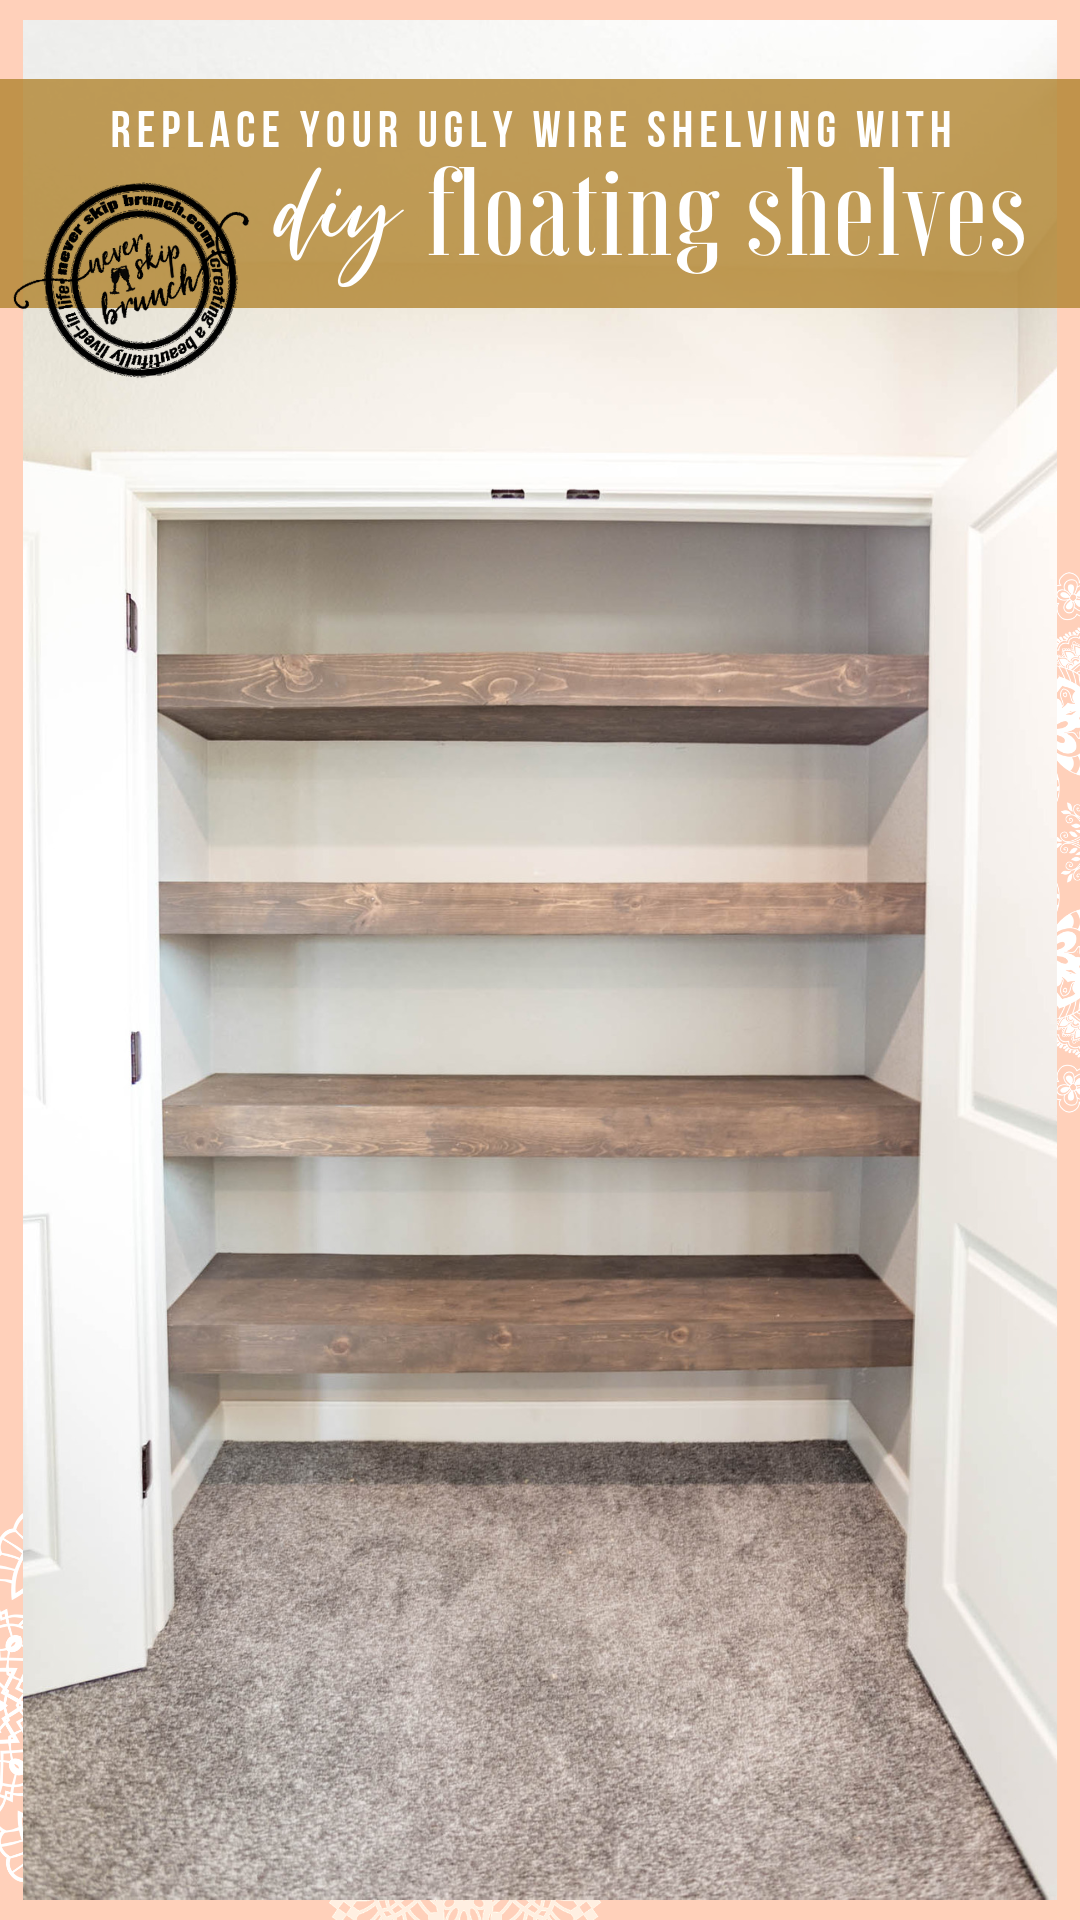 Replace Your Ugly Wire Shelves With Wood Floating Shelves